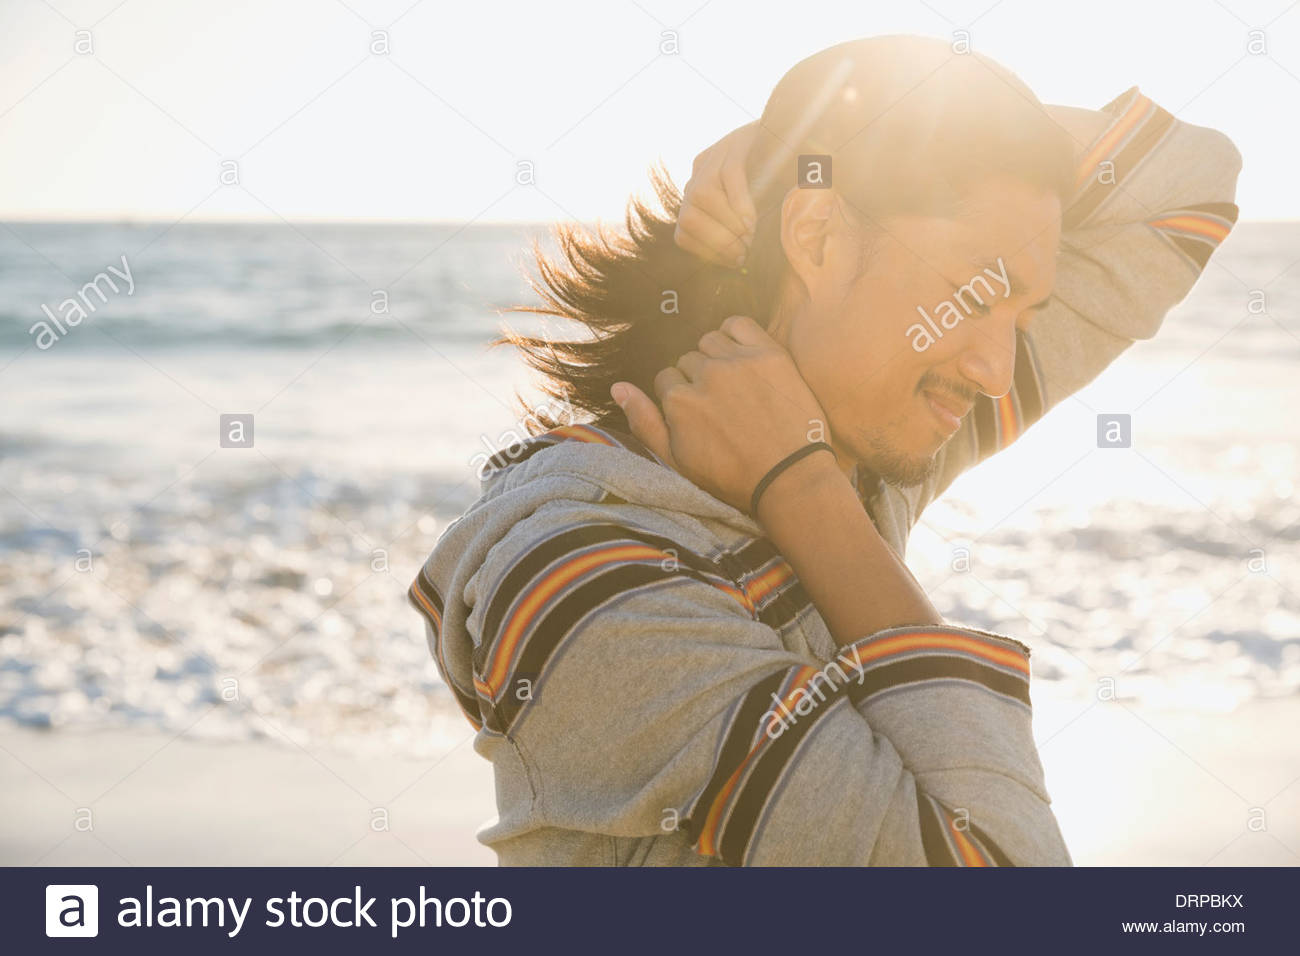 Smiling man standing near the ocean - Stock Image